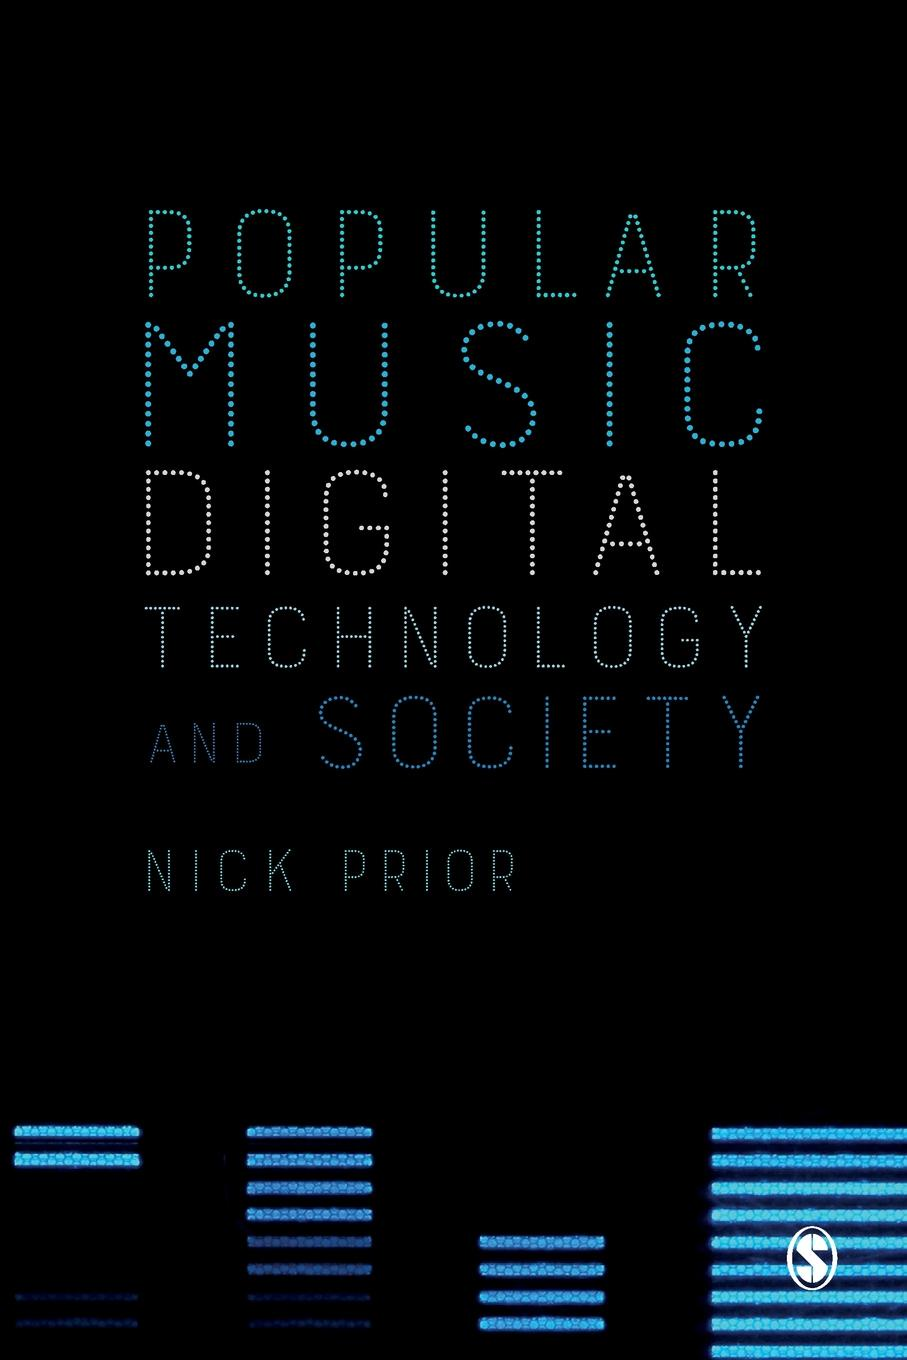 Nick Prior Popular Music, Digital Technology and Society nick jenkins smart grid technology and applications